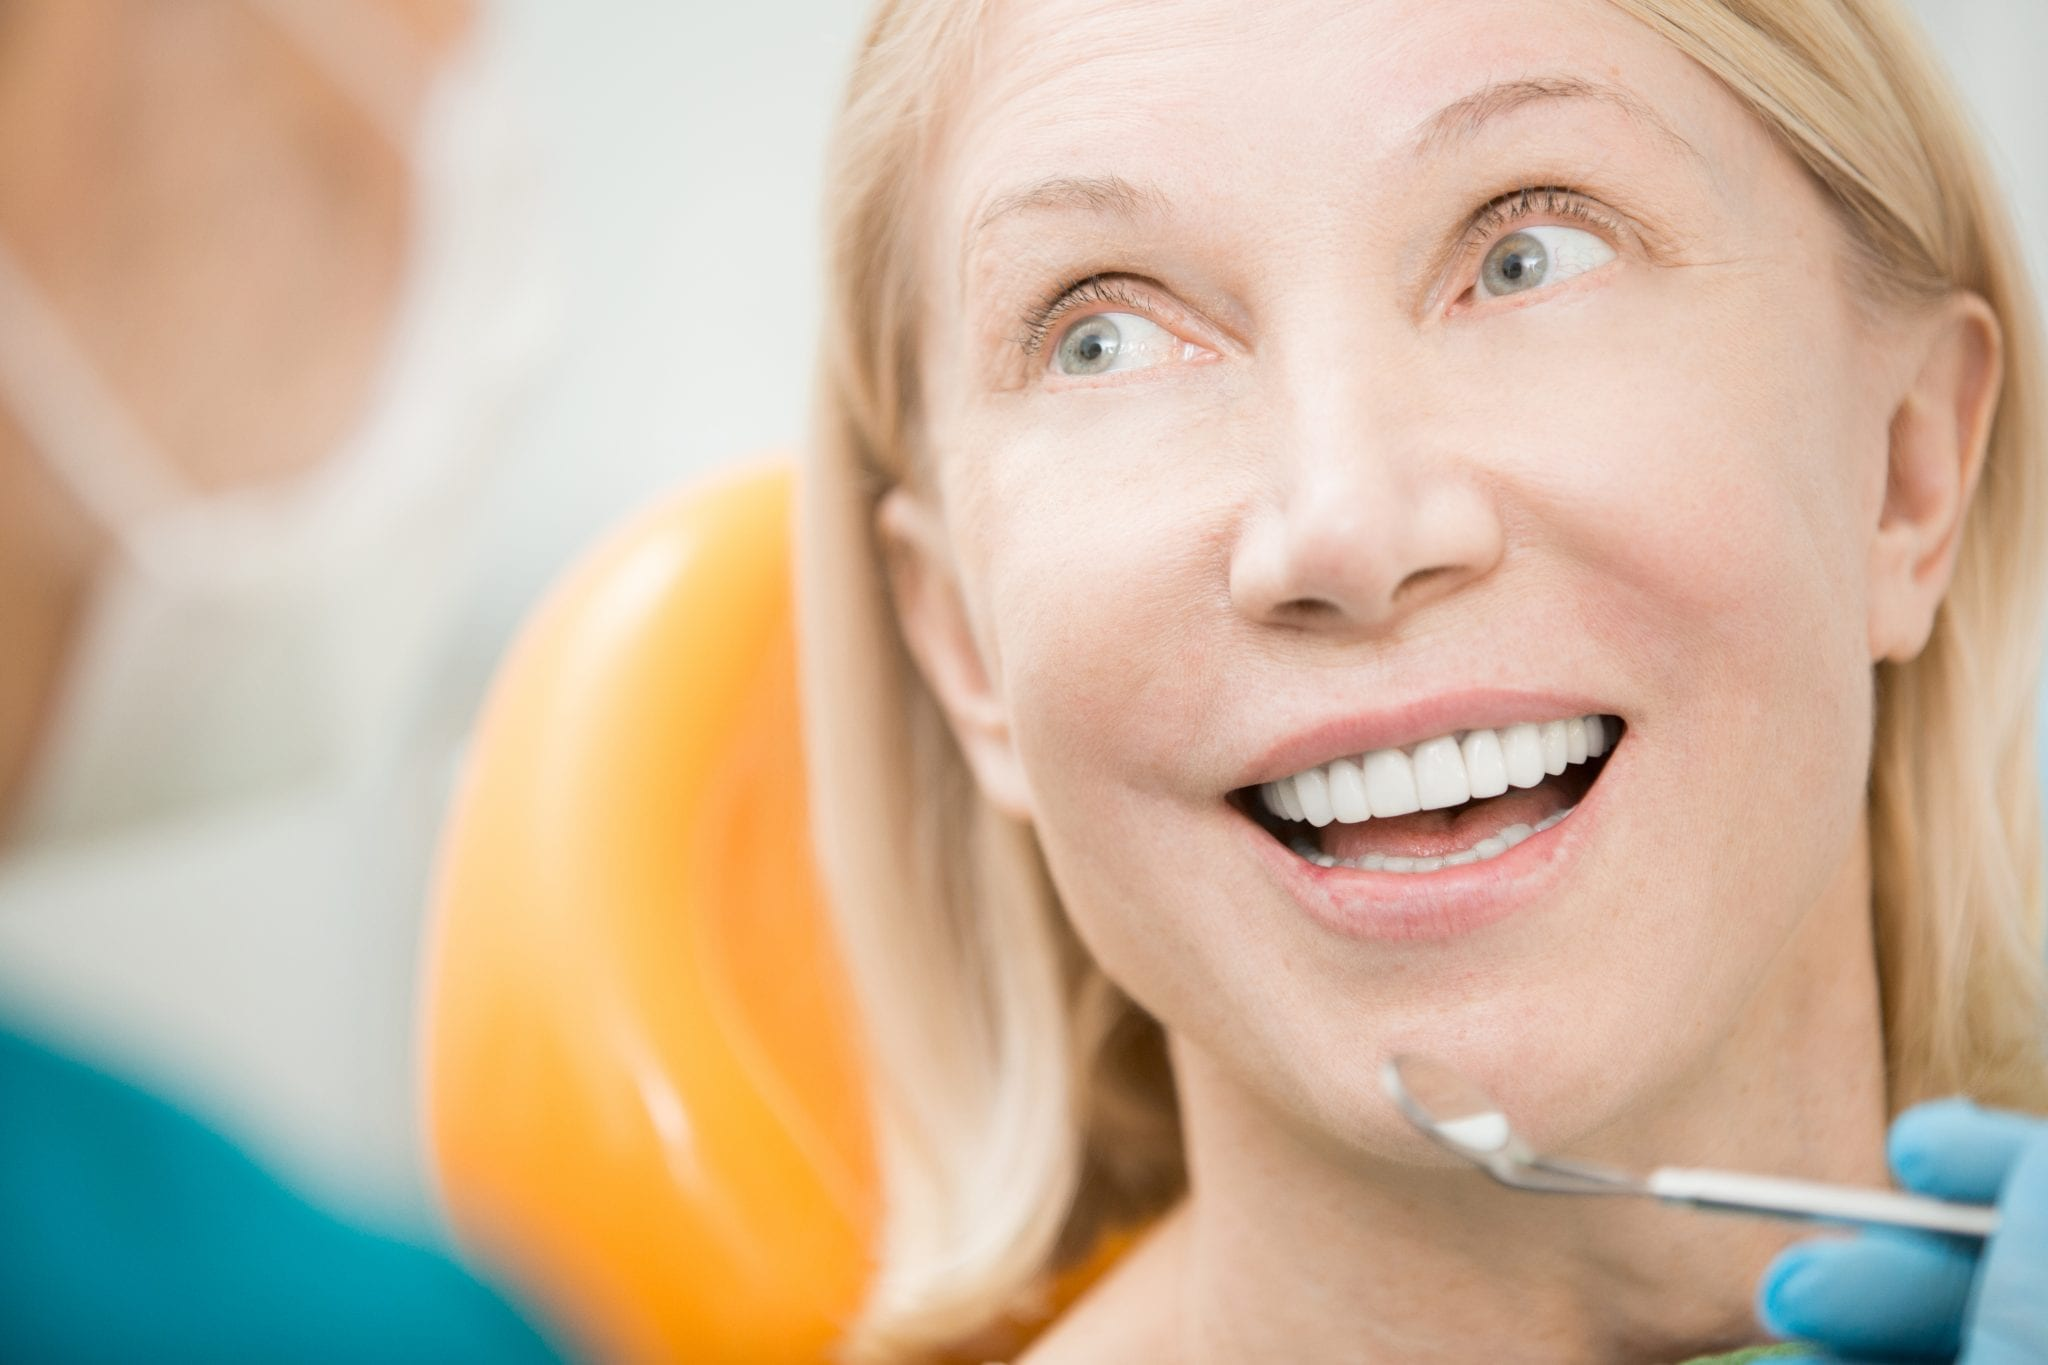 Is Gingivitis Reversible? AquaSprings Dental in San Marcos, Texas First off, what is gingivitis? Well, gingivitis is the early stage of periodontal disease. dentist in san marcos, texas